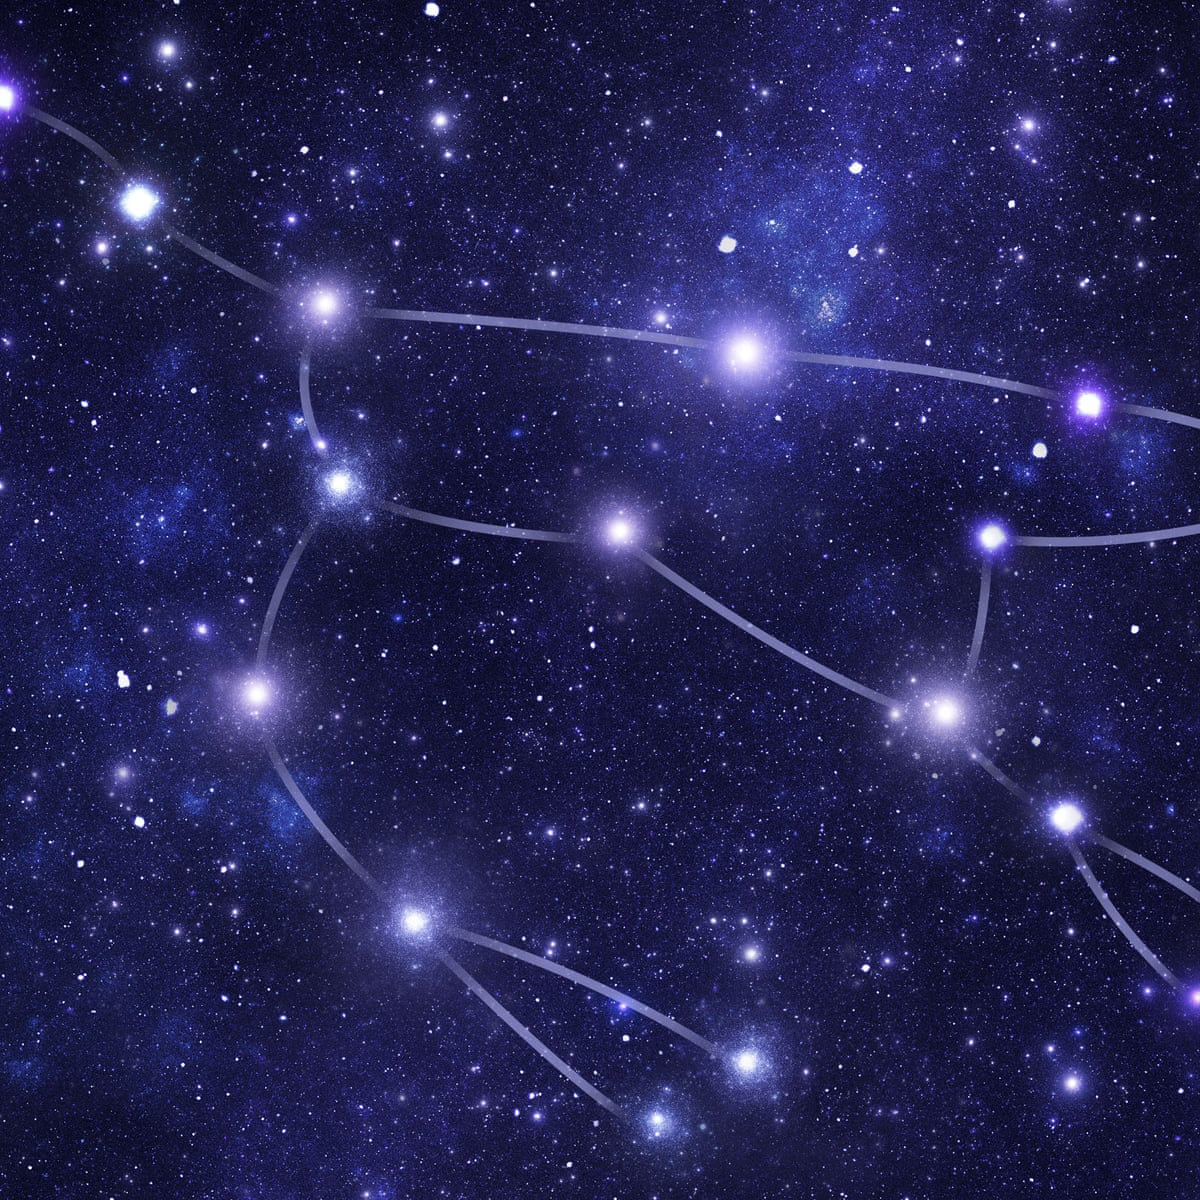 How astrology paved the way for predictive analytics | History of science |  The Guardian